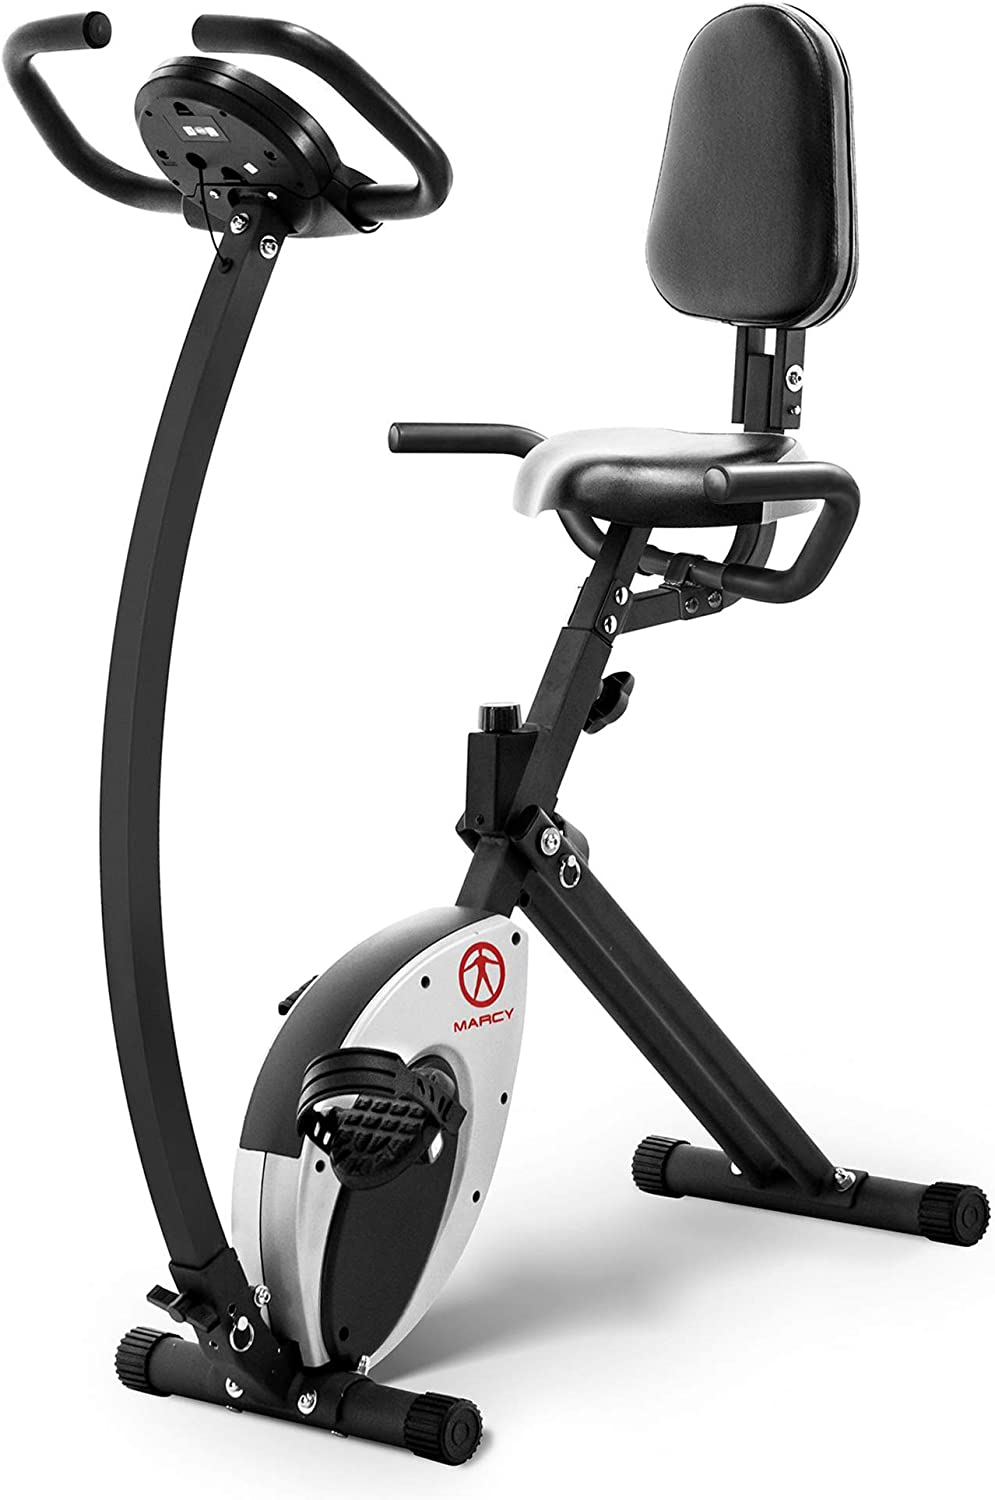 Marcy Foldable Exercise Bike Reviews In 2021 - Best 3 Model 1